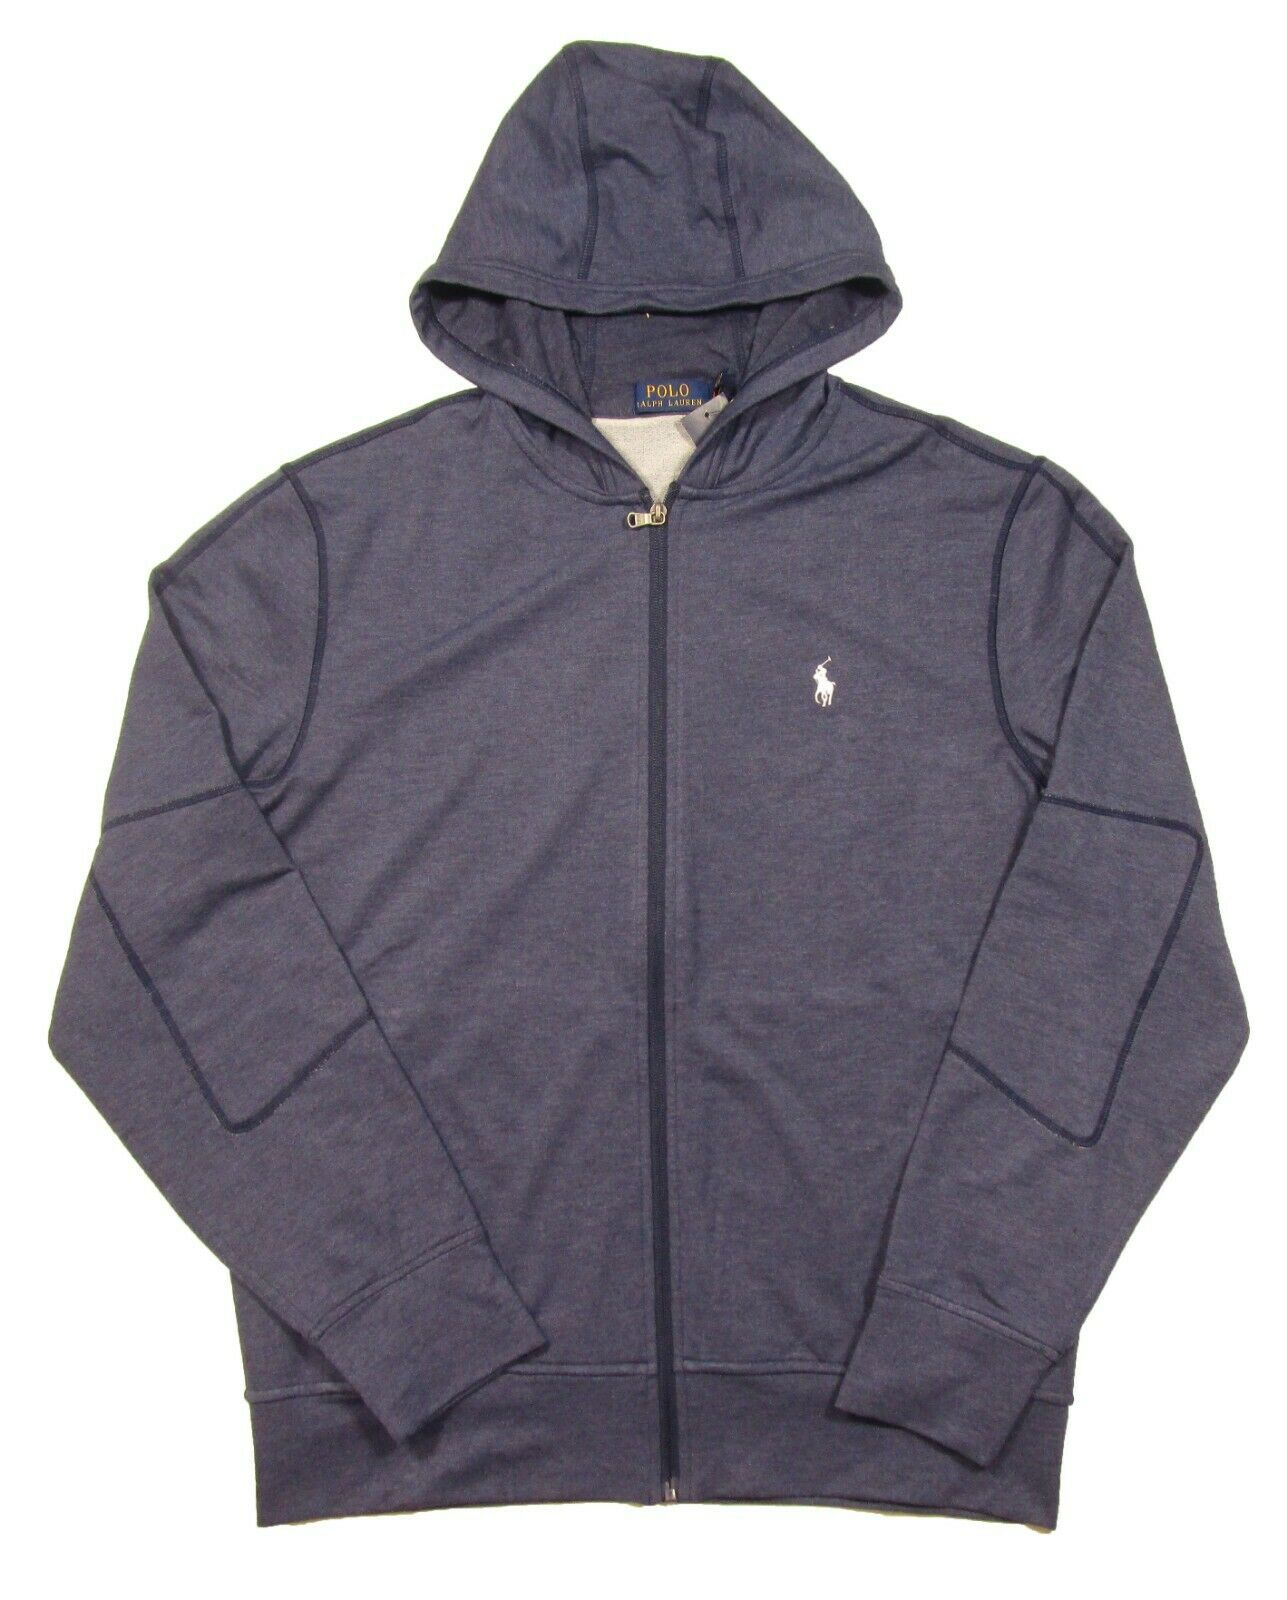 Polo Ralph Lauren Men's bluee Heather Elbow Patch French Terry Full Zip Hoodie